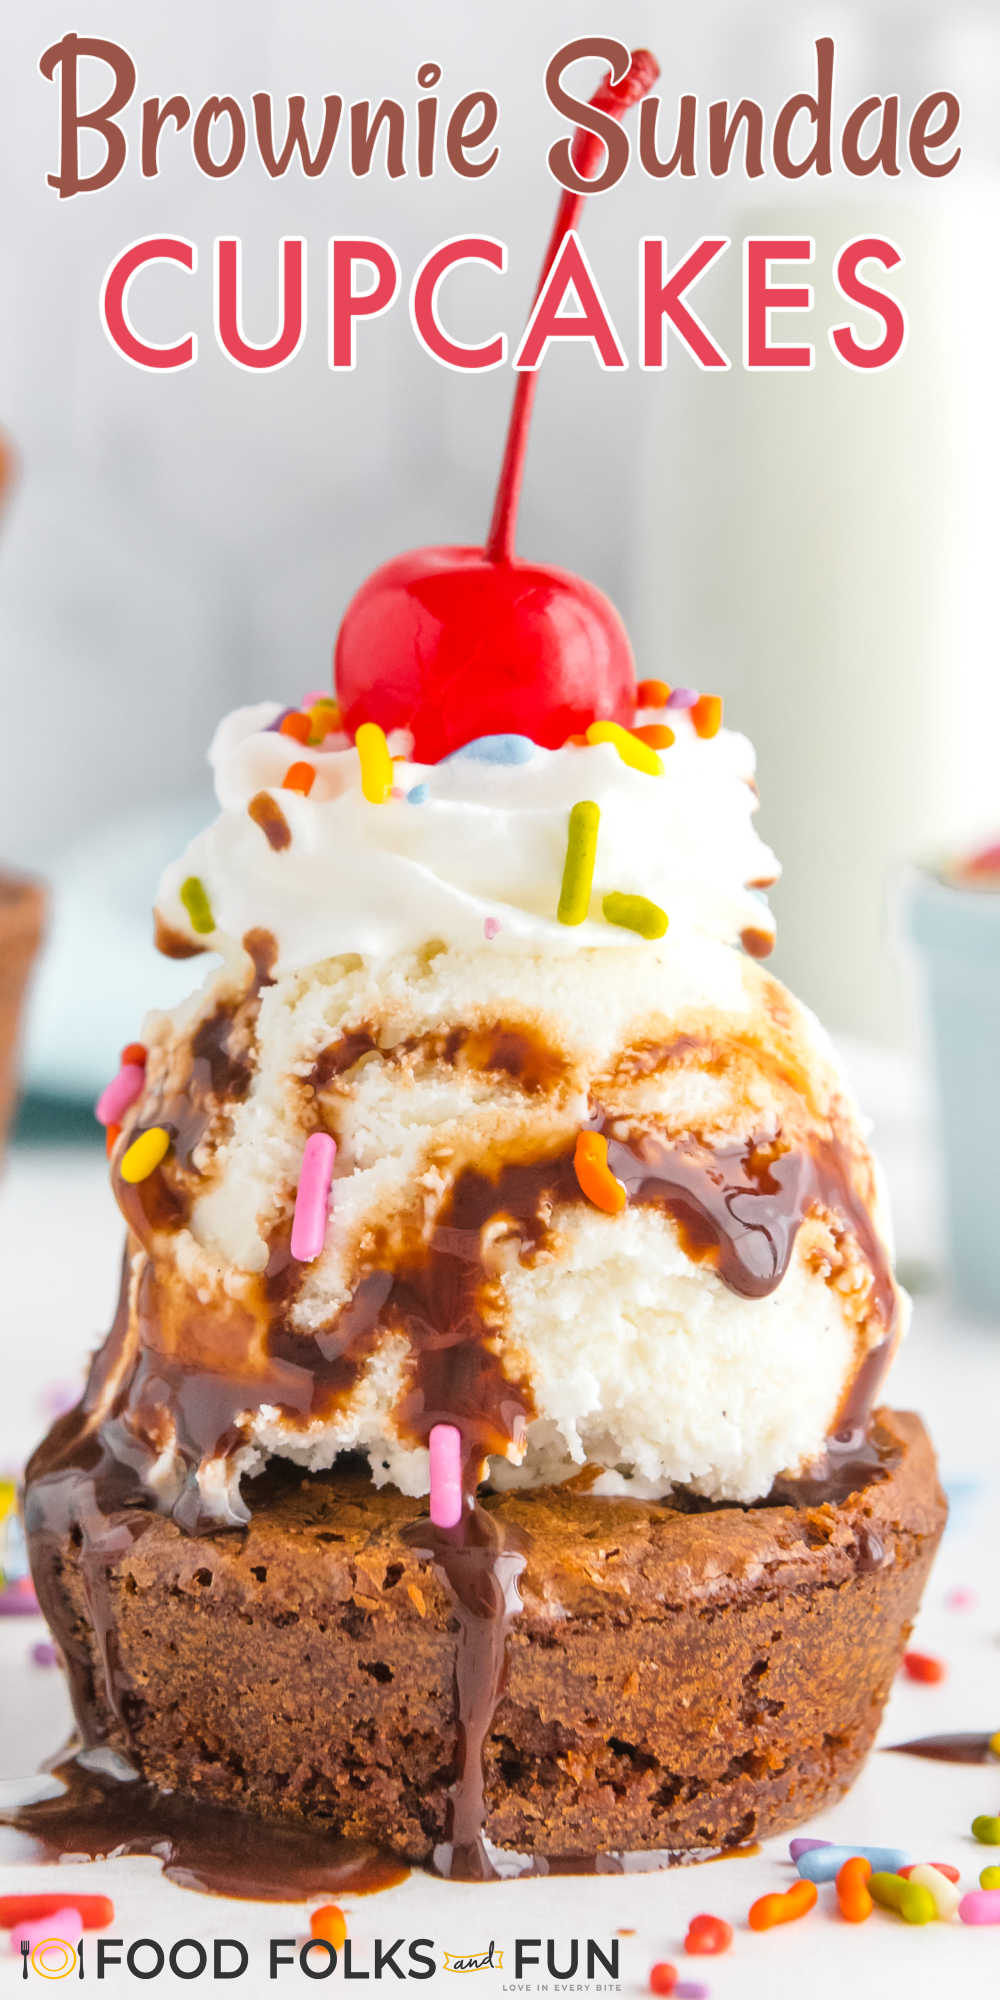 This Brownie Ice Cream Sundae Cupcakes recipe is a party on a plate! Use your favorite ice cream and turn these ice cream cupcakes into an easy summer treat! via @foodfolksandfun